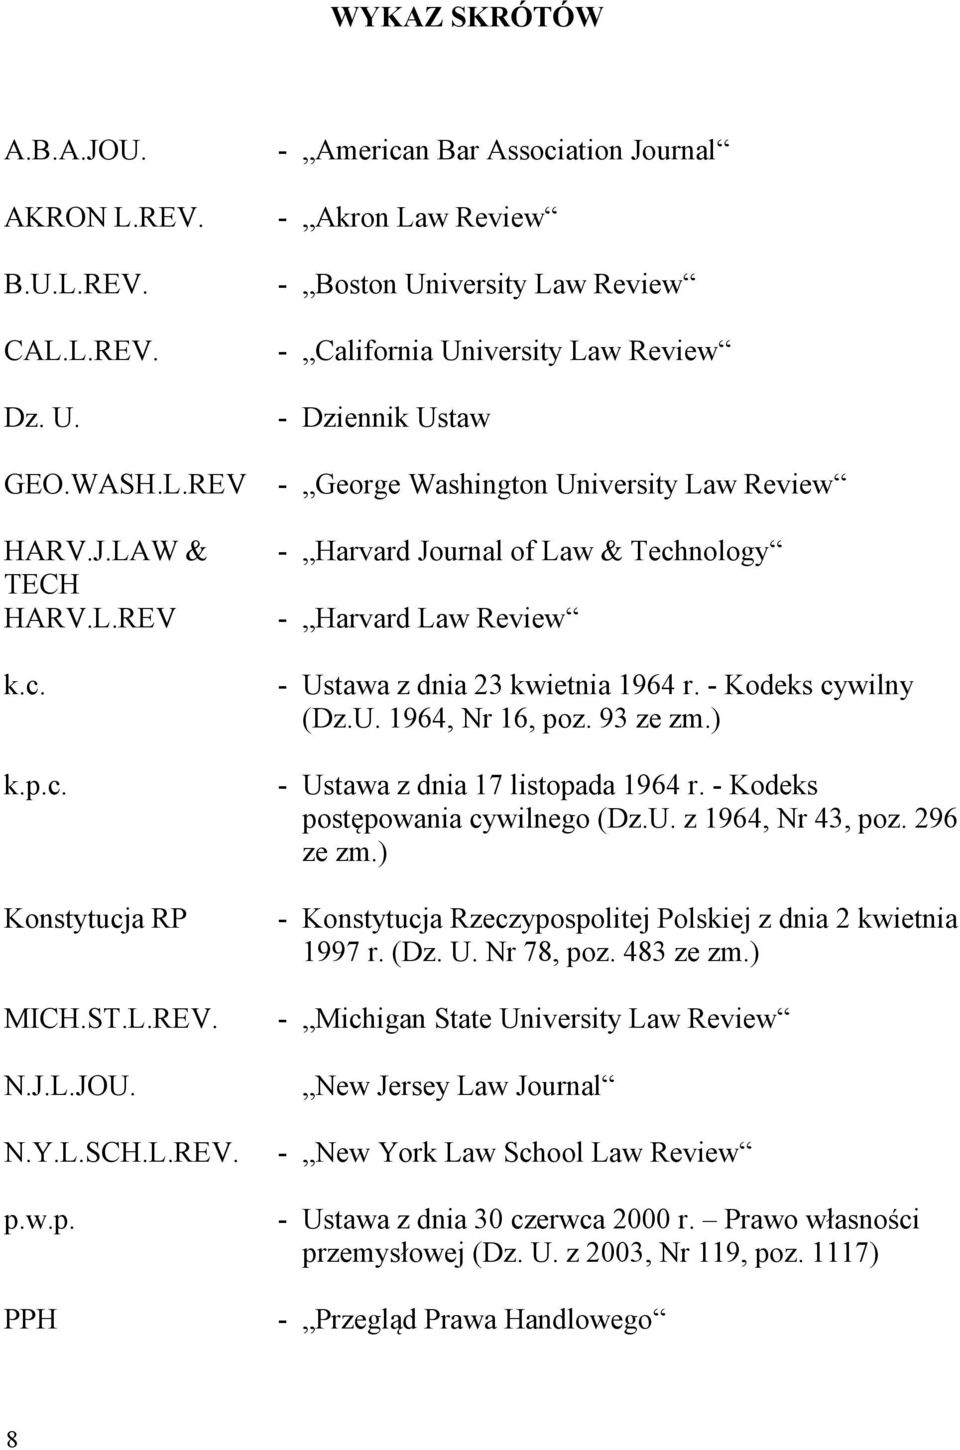 w.p. PPH - American Bar Association Journal - Akron Law Review - Boston University Law Review - California University Law Review - Dziennik Ustaw - George Washington University Law Review - Harvard